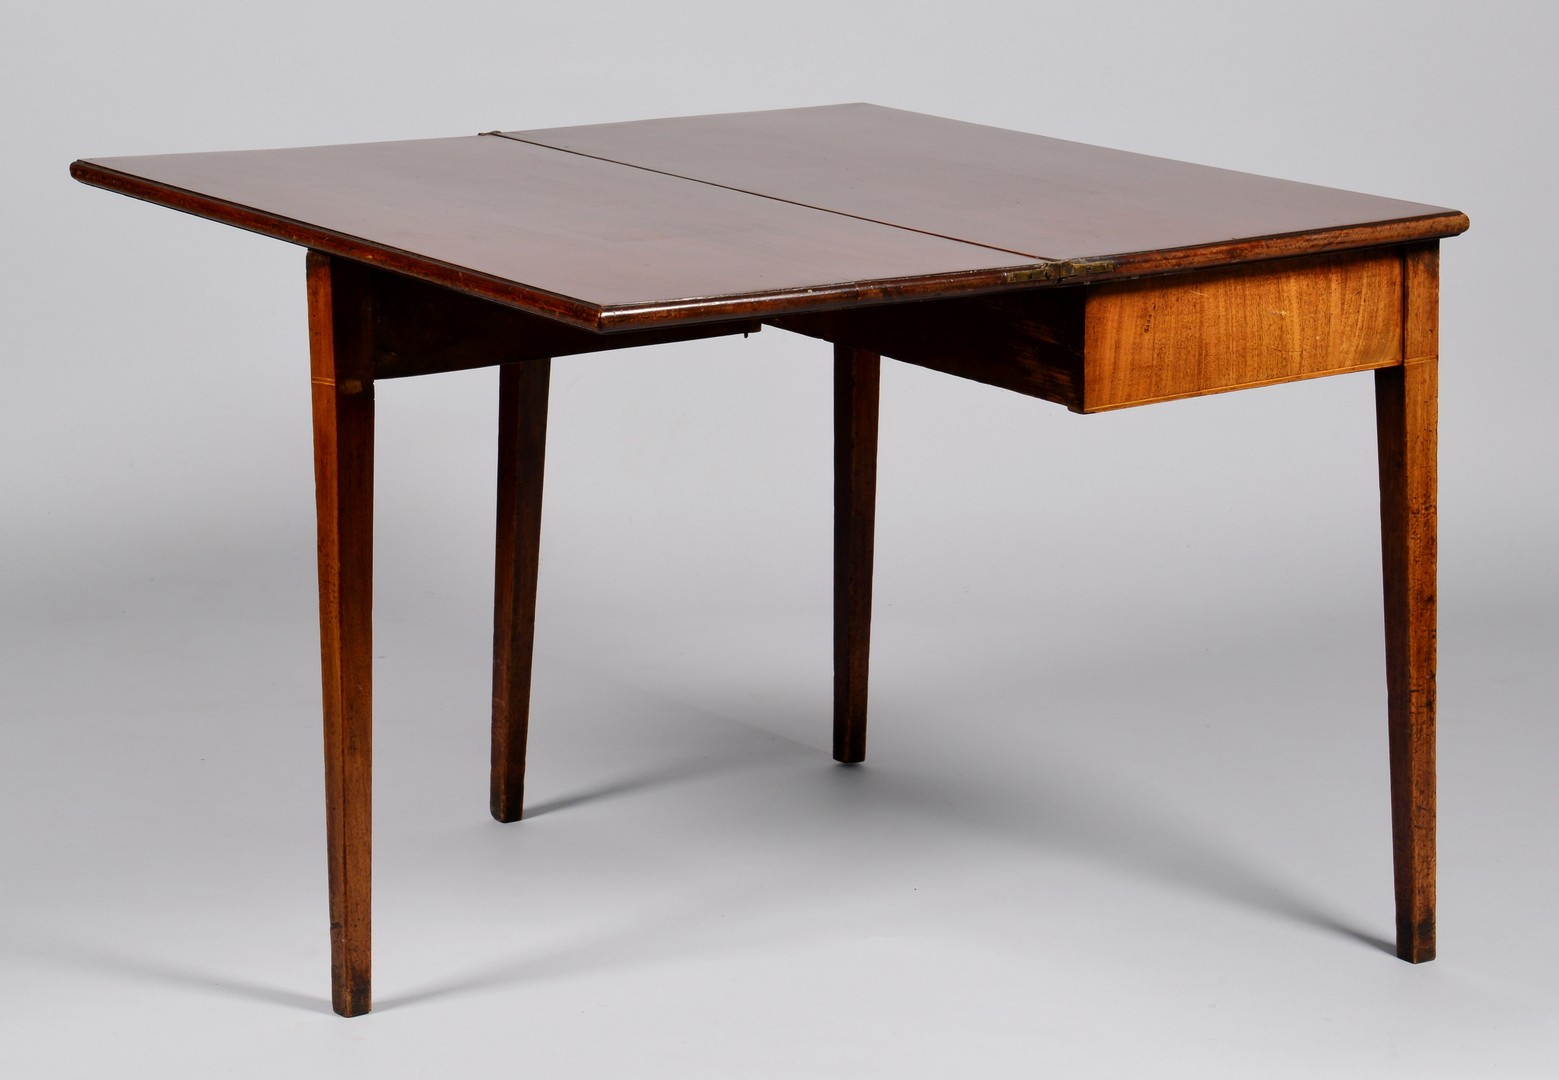 Lot 316: English Hepplewhite Inlaid Card Table